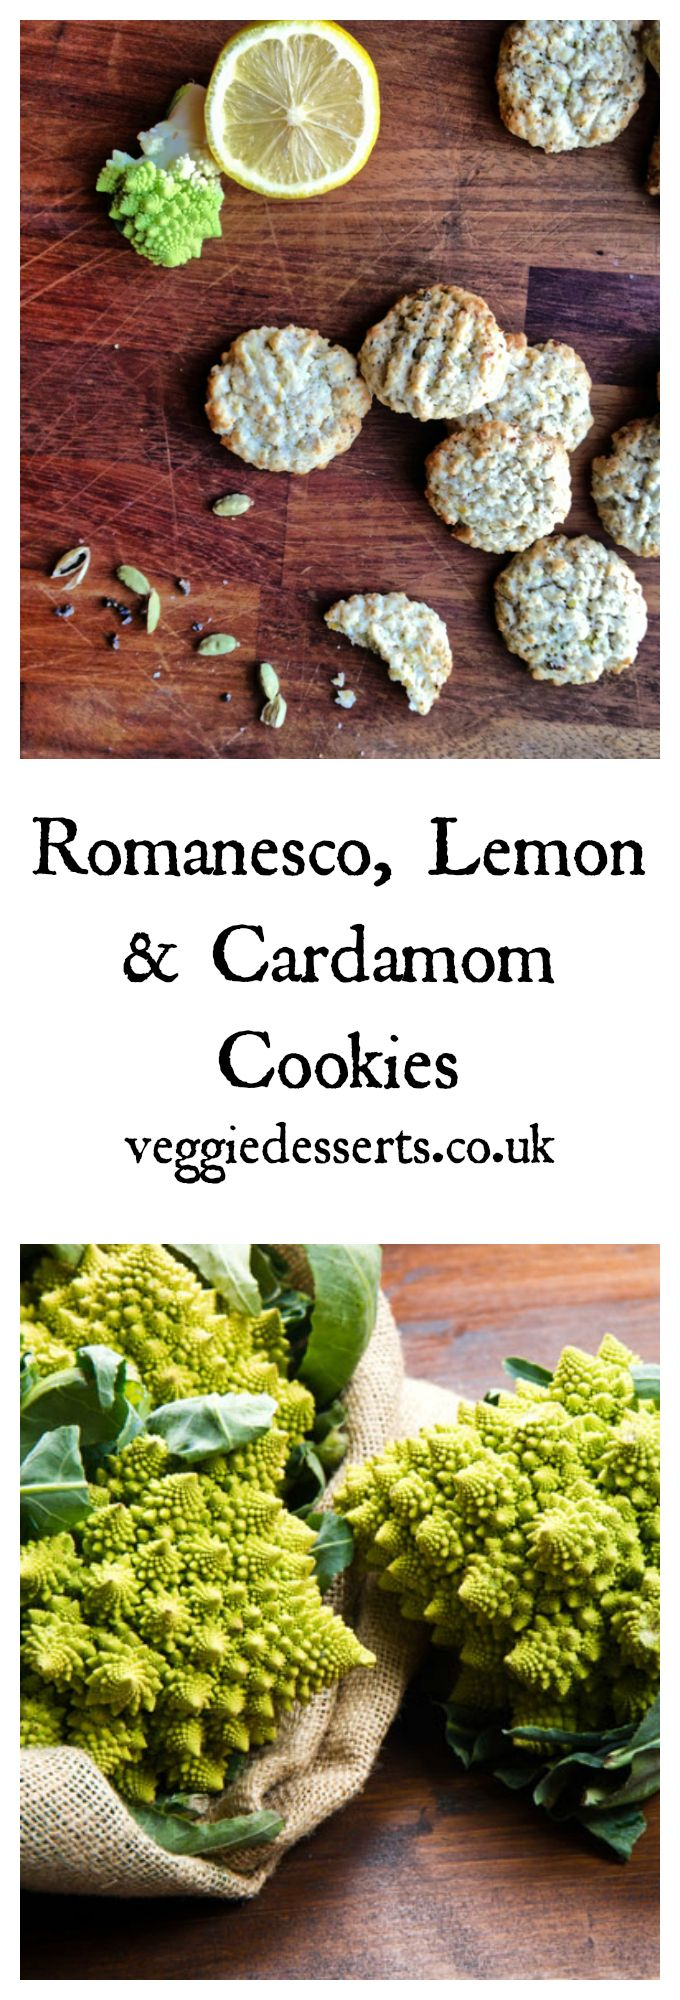 Romanesco Cardamom Lemon Cookies | Veggie Desserts Blog  These delicious and easy biscuits are a fun way to use Romanesco! The brassica is a bit like a cauliflower/broccoli and has a pleasant nutty taste – perfect in cardamom cookies! Easy to make vegan.   veggiedesserts.co.uk